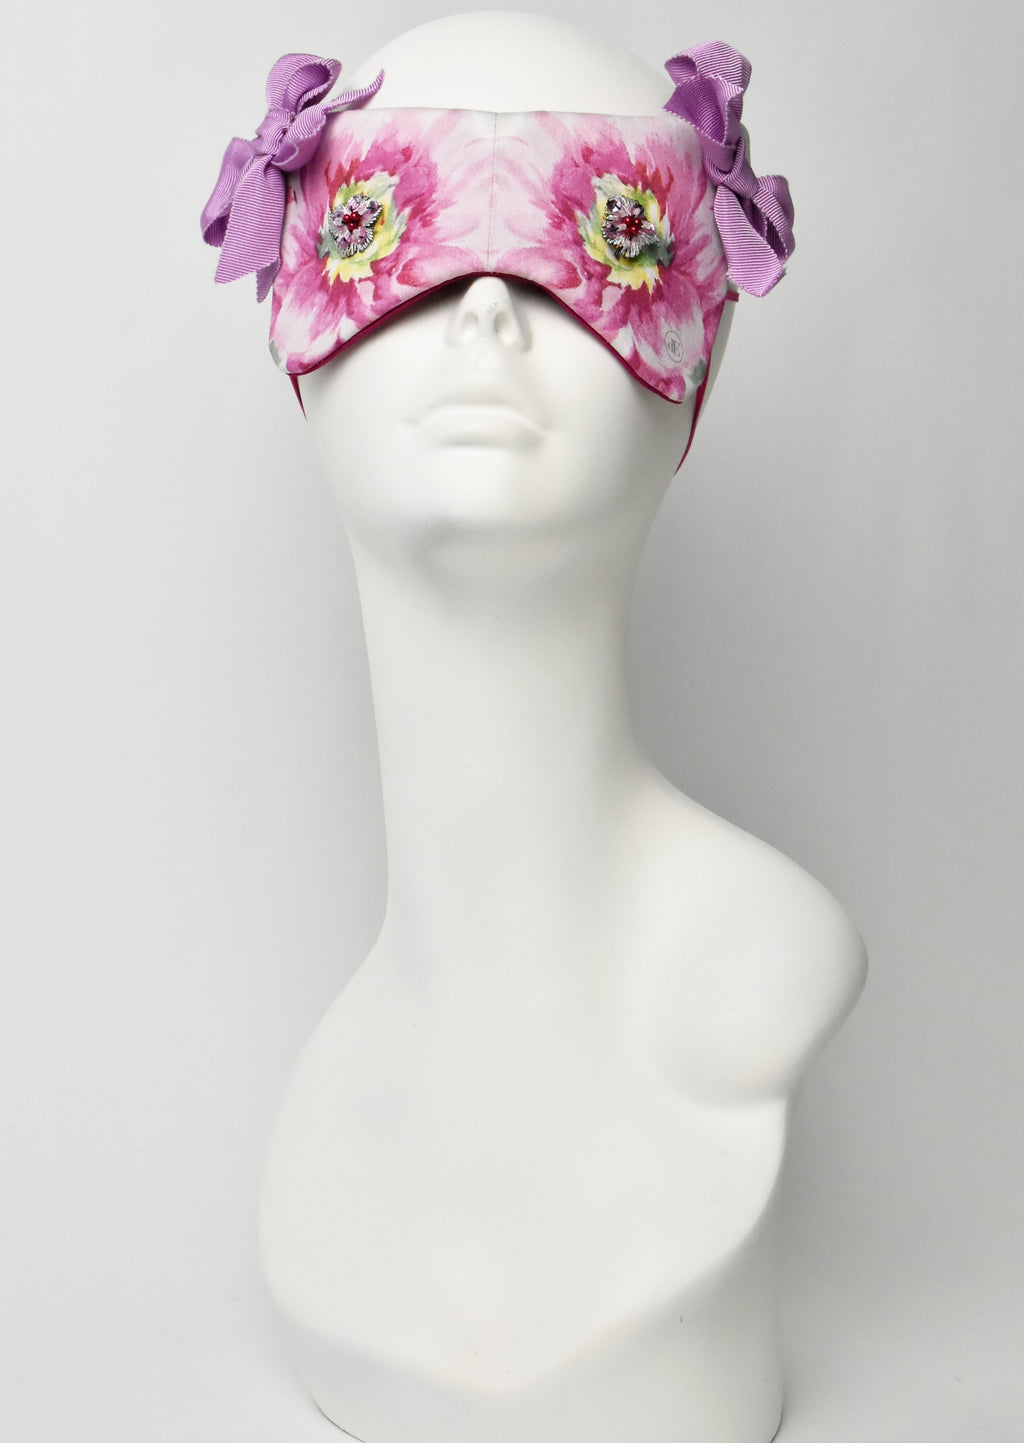 Garden II - Sleeping Couture Eye Mask.